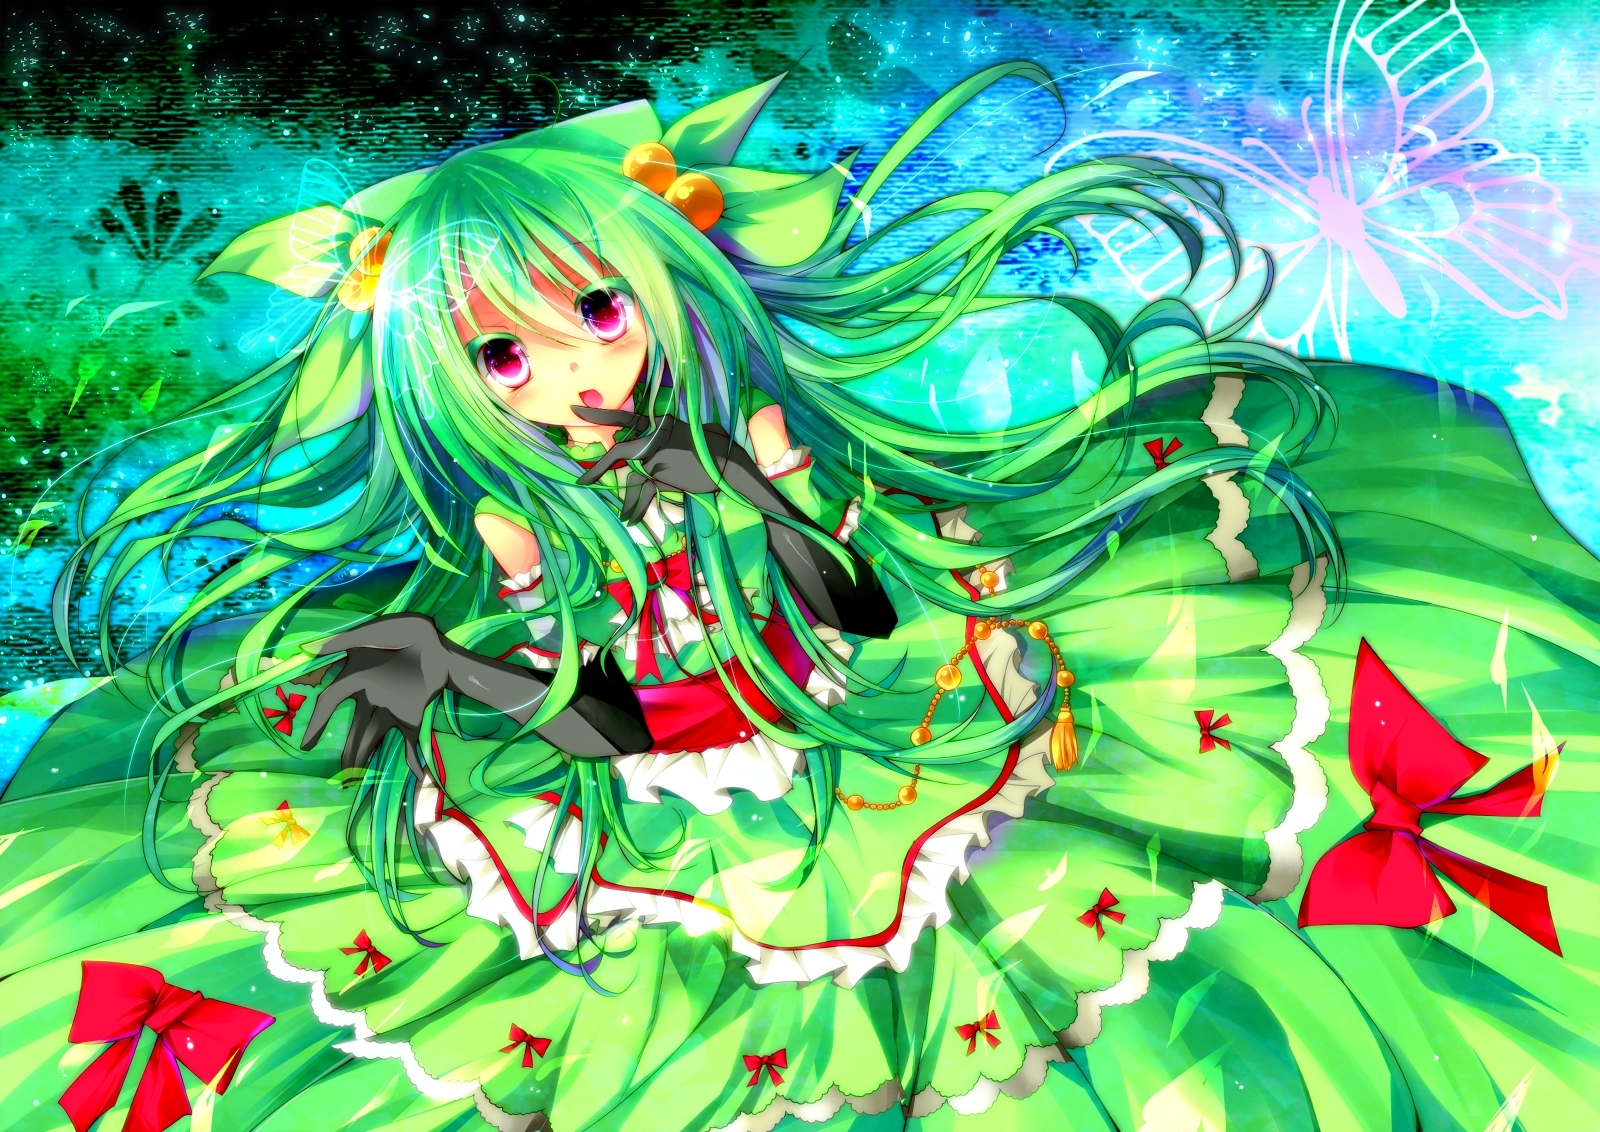 dress gloves Green hair HD Wallpaper